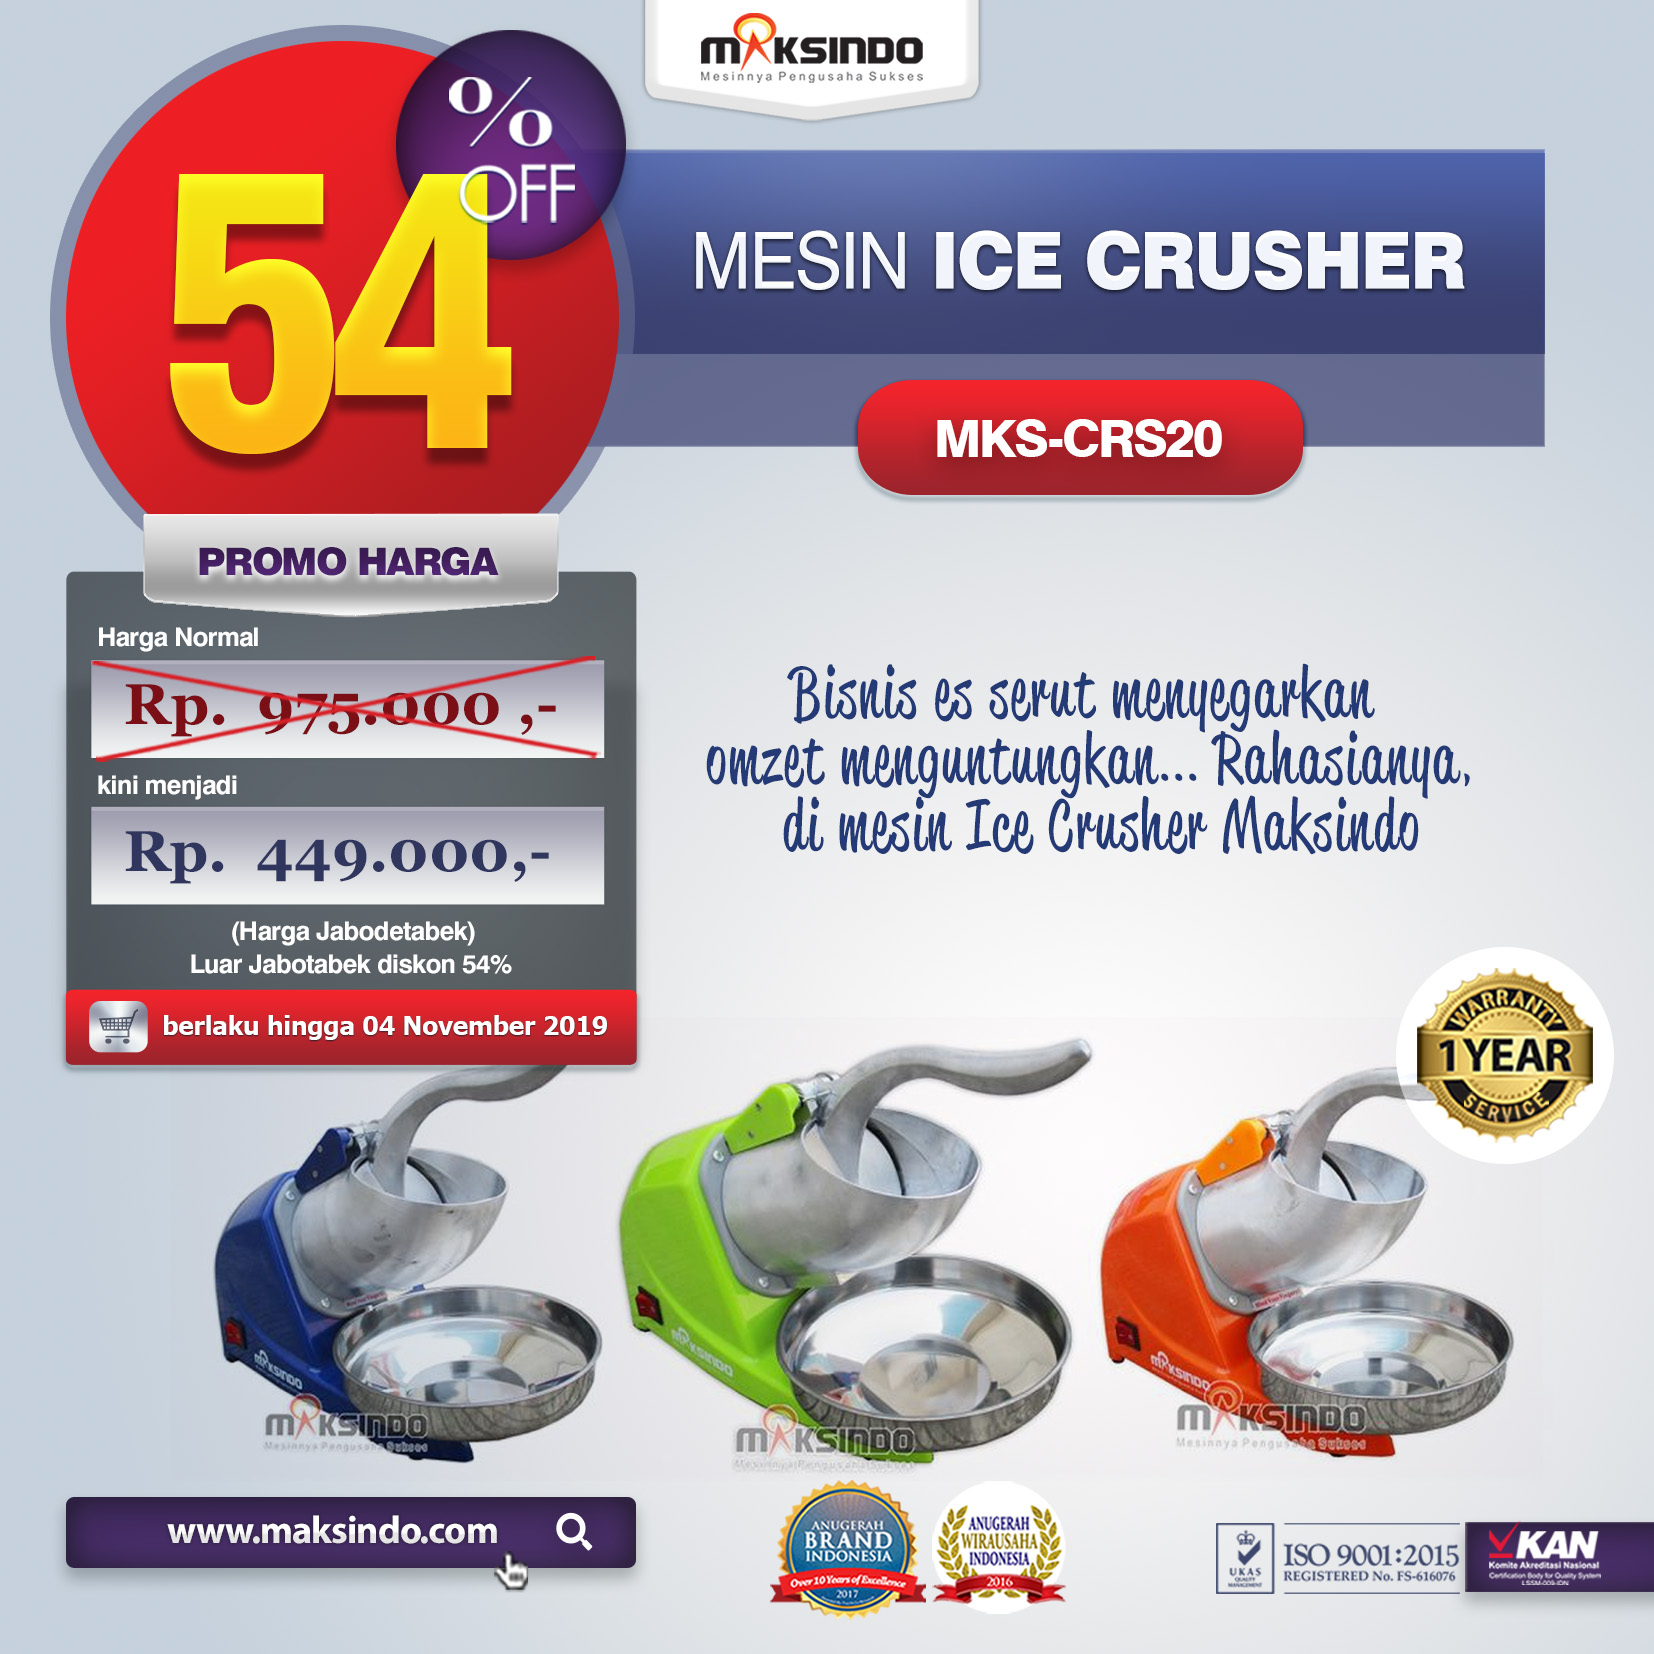 MKS CRS20 mesin ice crusher